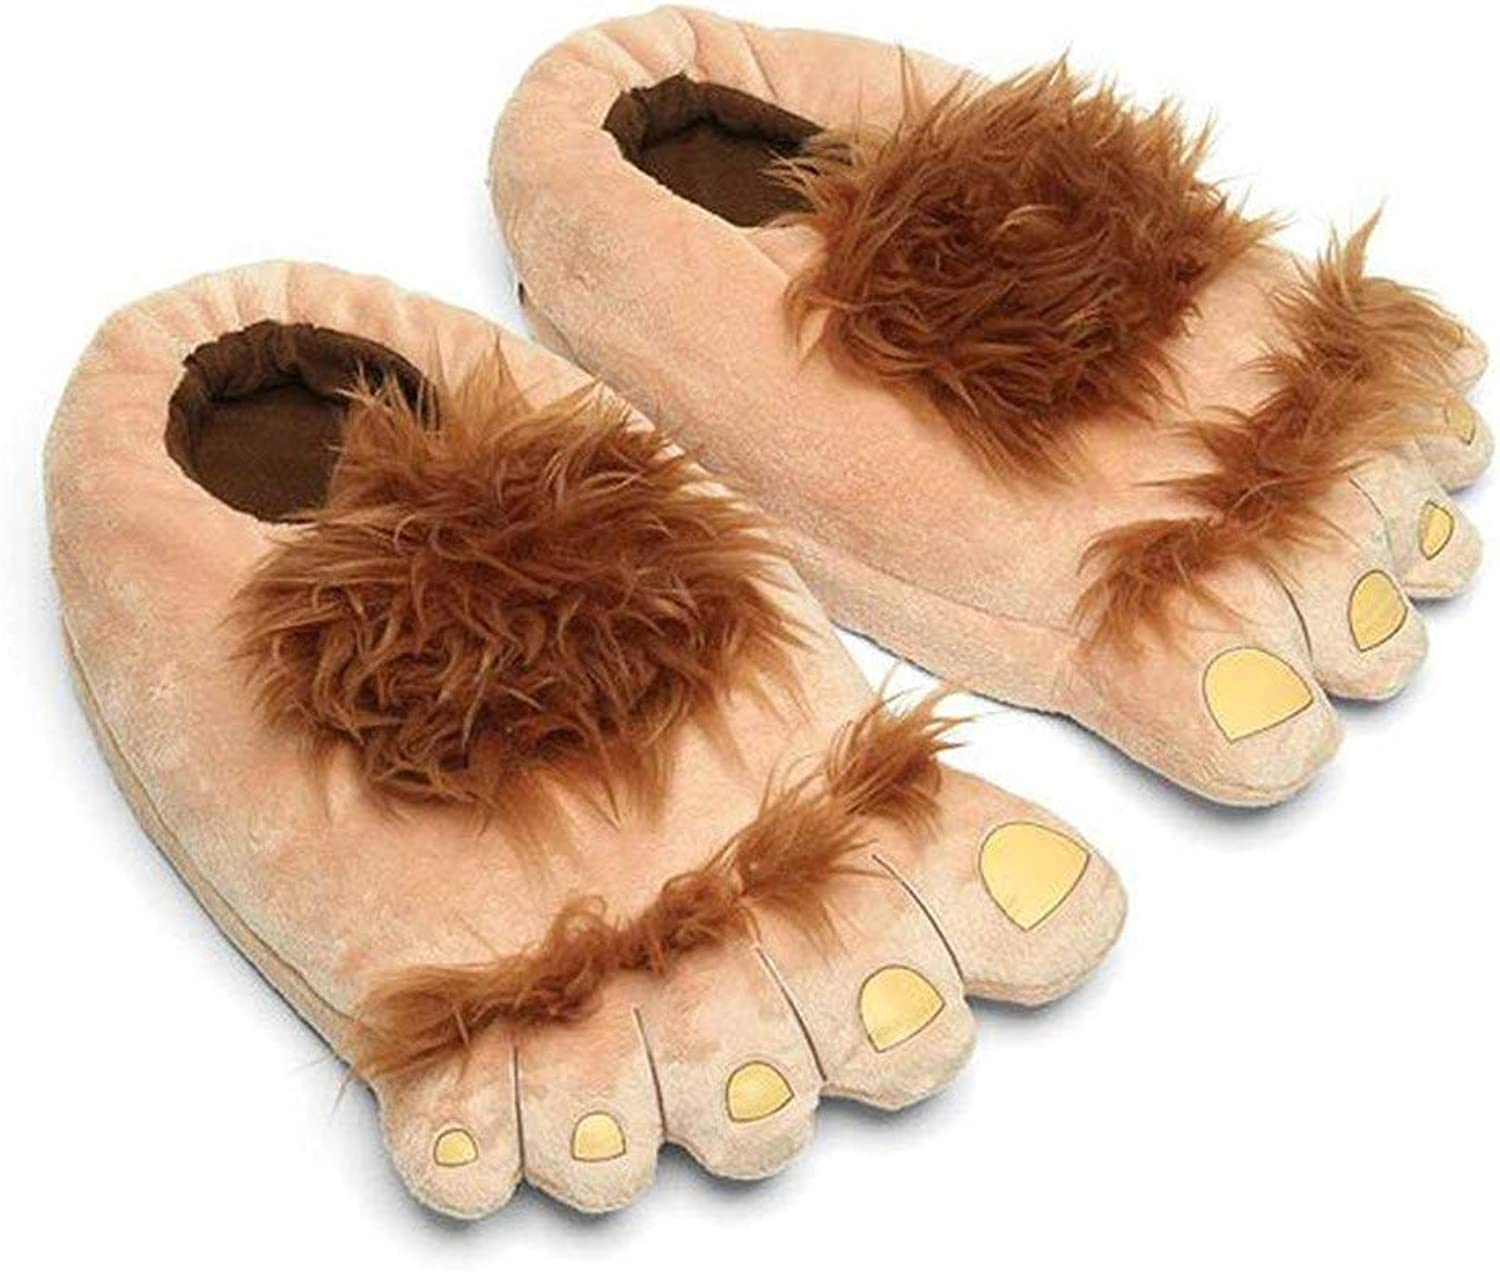 Adults Furry Monster Adventure Slippers, Comfortable Novelty Warm Winter Big Hobbit Feet Slippers